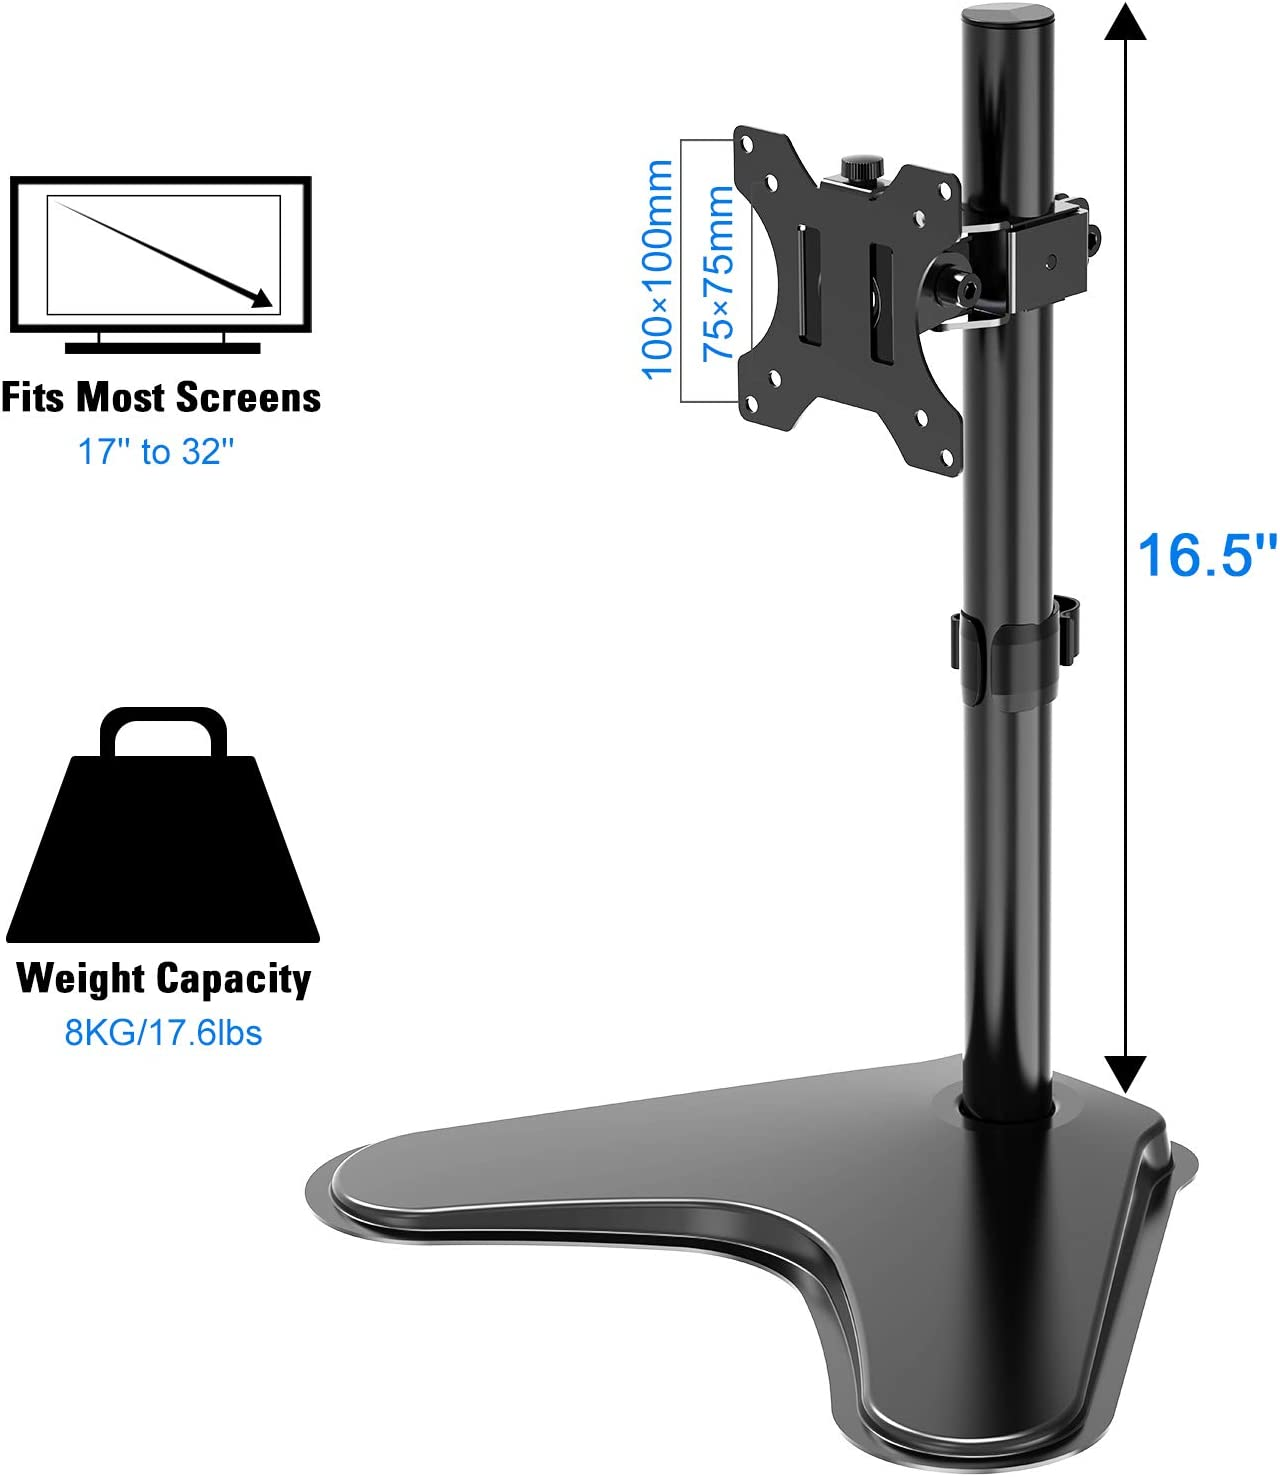 Single Monitor Stand Free-Standing LCD Monitor Desk Mount Fits 1 Screen up to 32 inch 17.6 lbs Adjustable Height Tilt Swivel and Rotation VESA 75X75 100X100